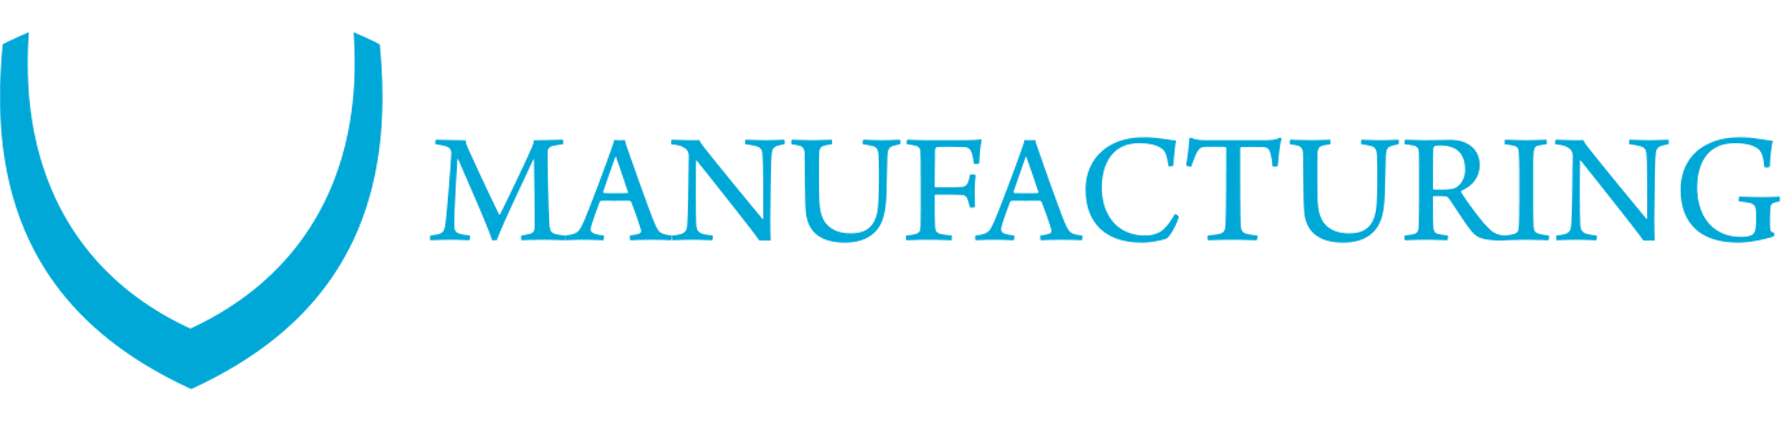 2021 Manufacturing Conference LOGO horizontal